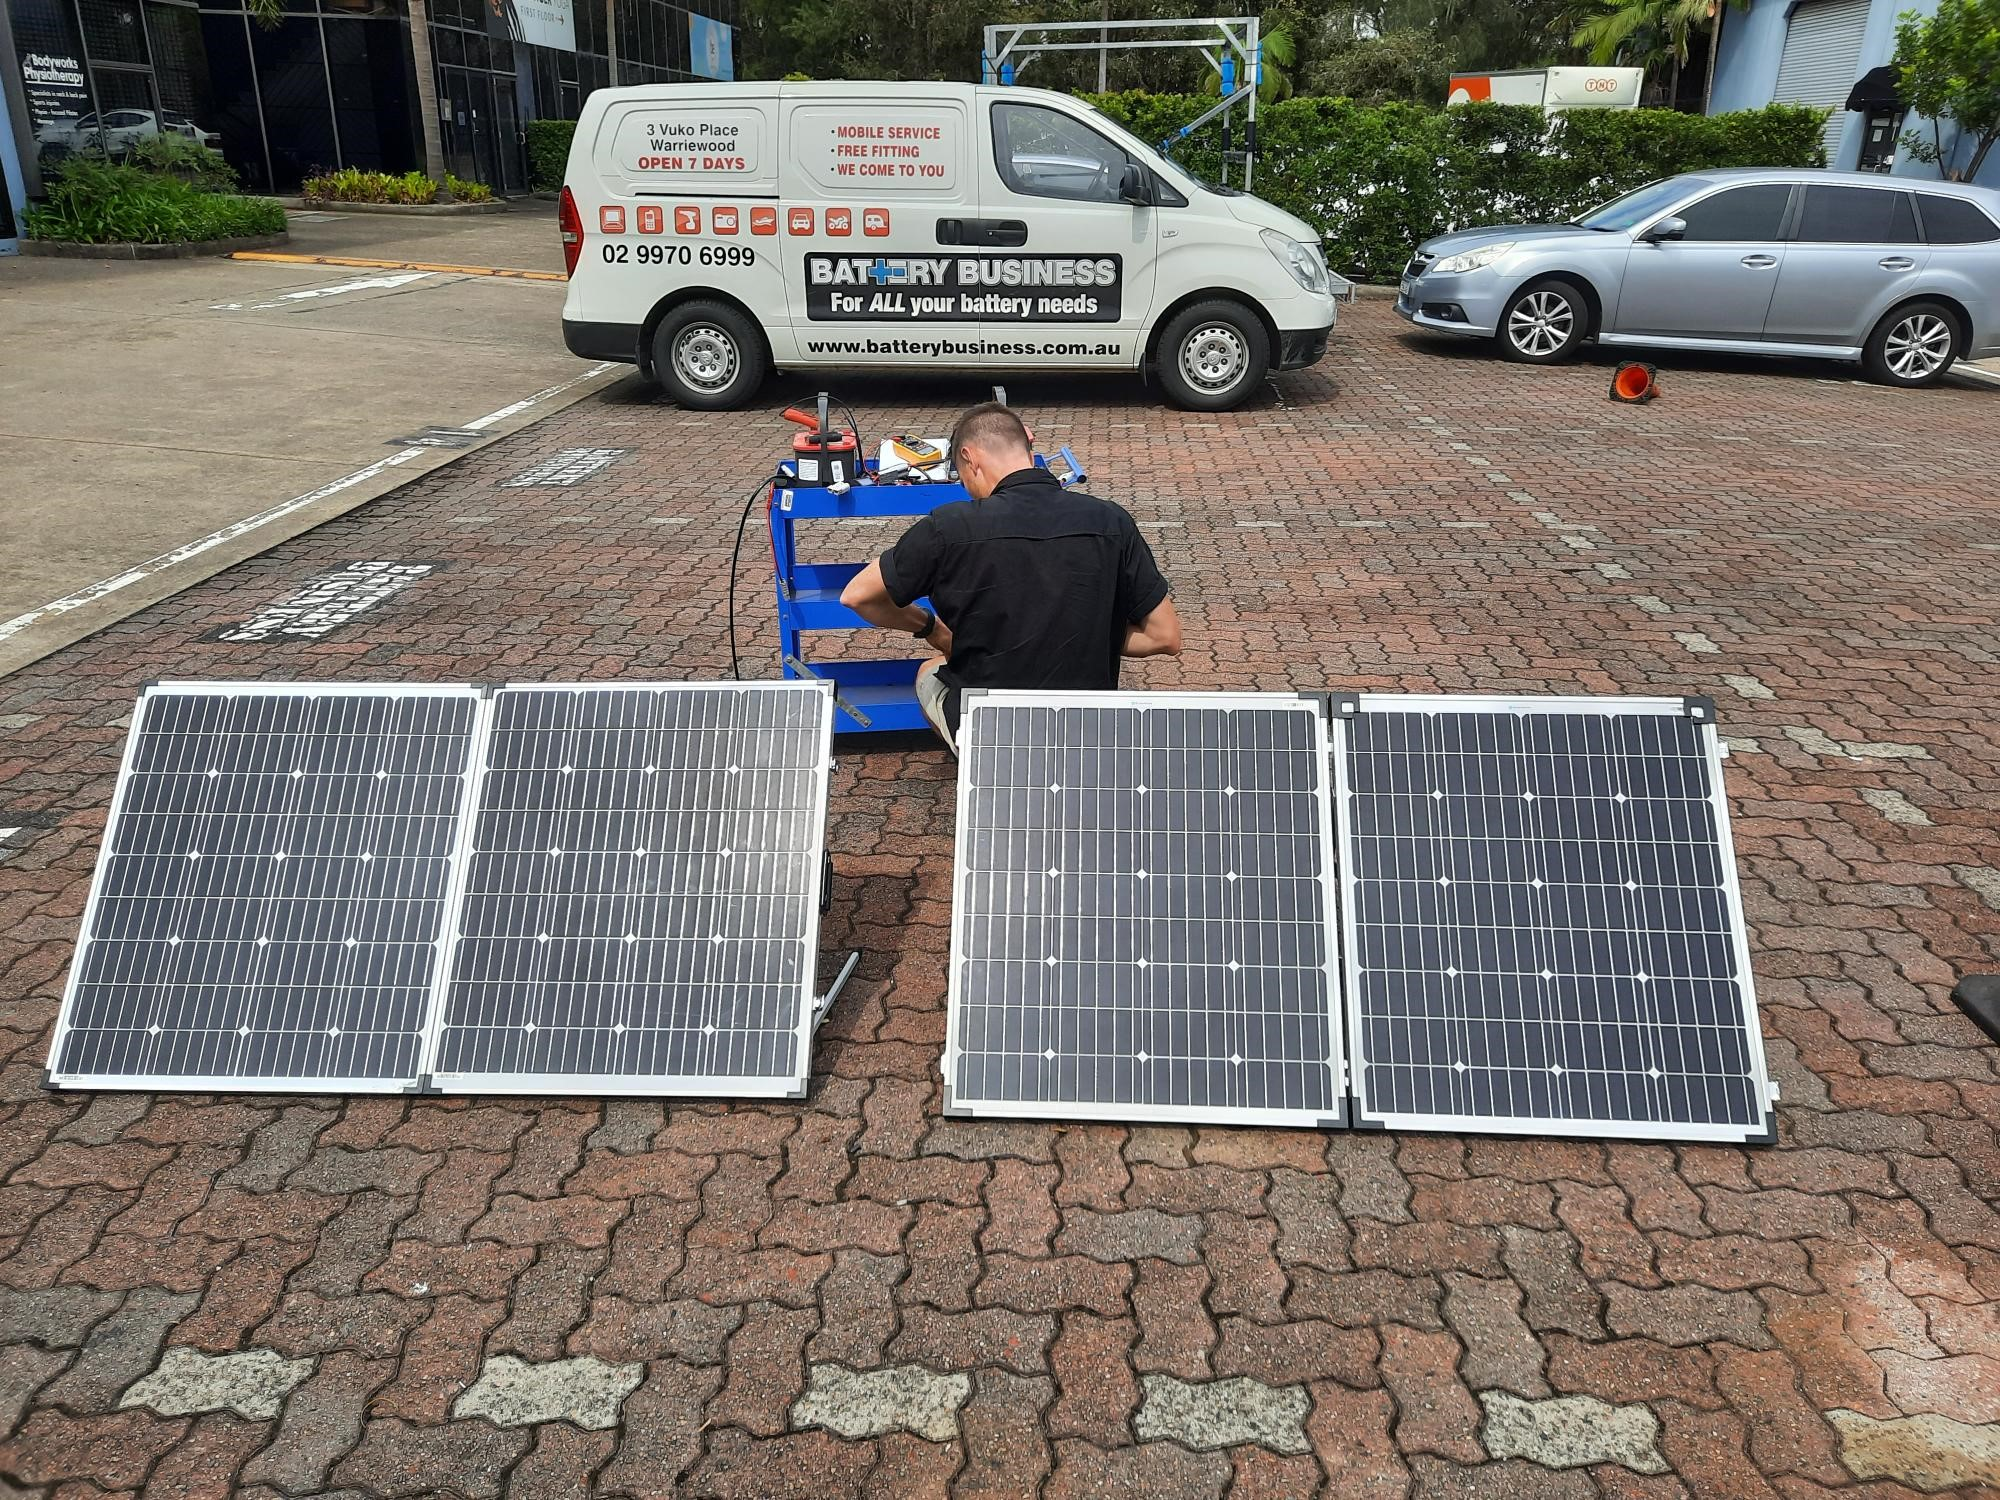 Solar panels for camping - squeezing out the most power